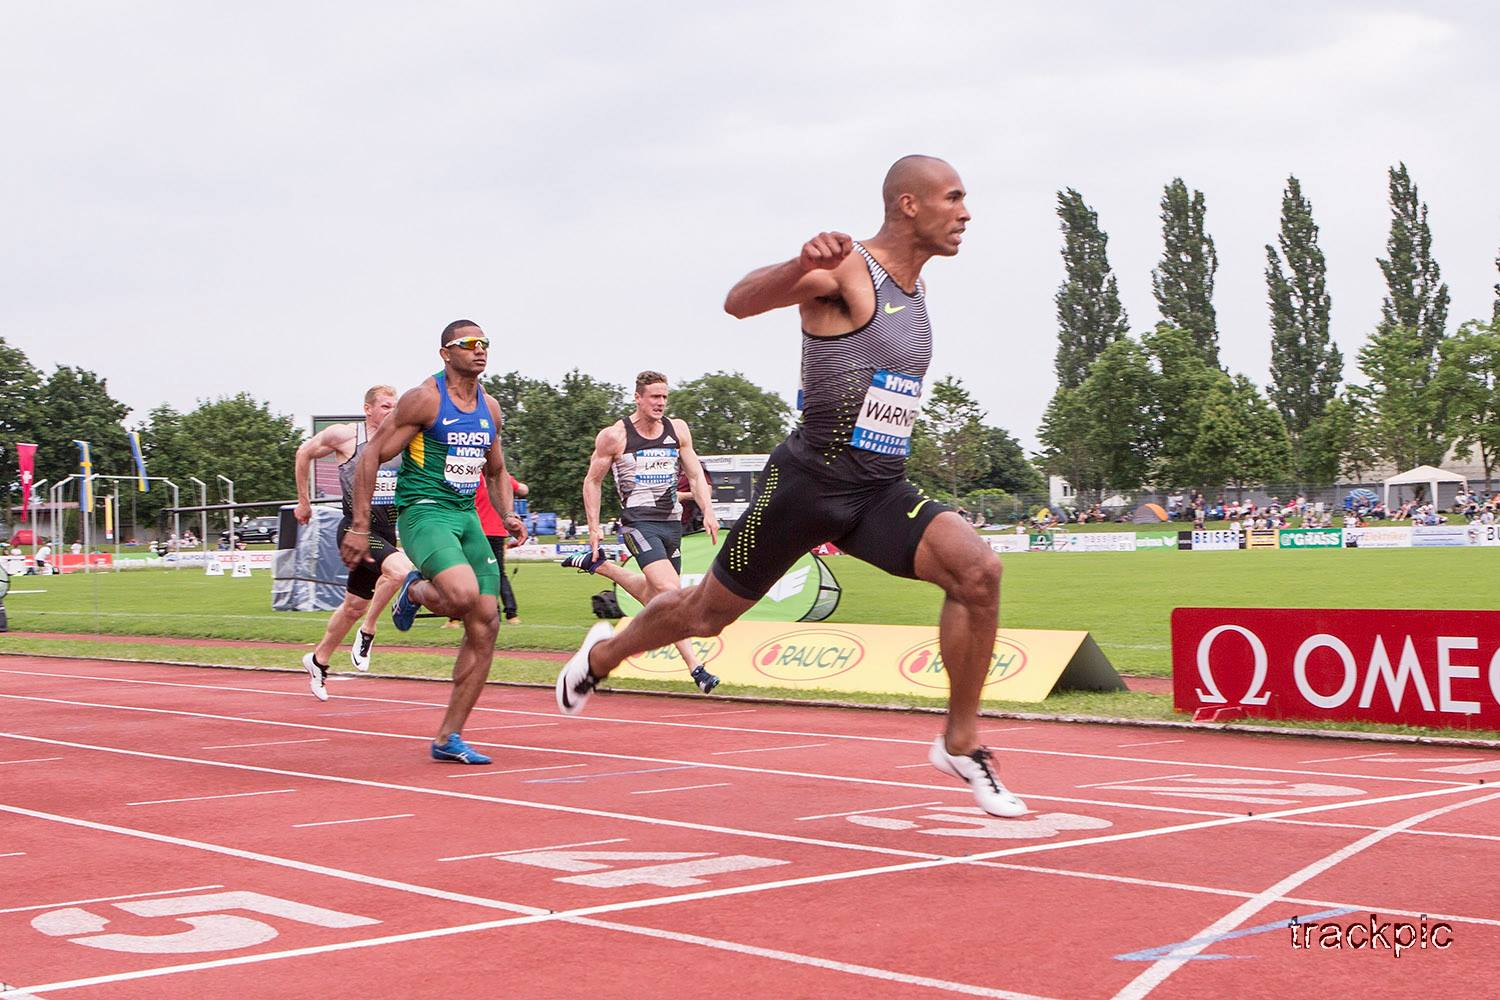 Damian Warner broke the Decathlon World Record by running 10.15 seconds in the 100m! Photo by Olavi Kaljunen / trackpic.net